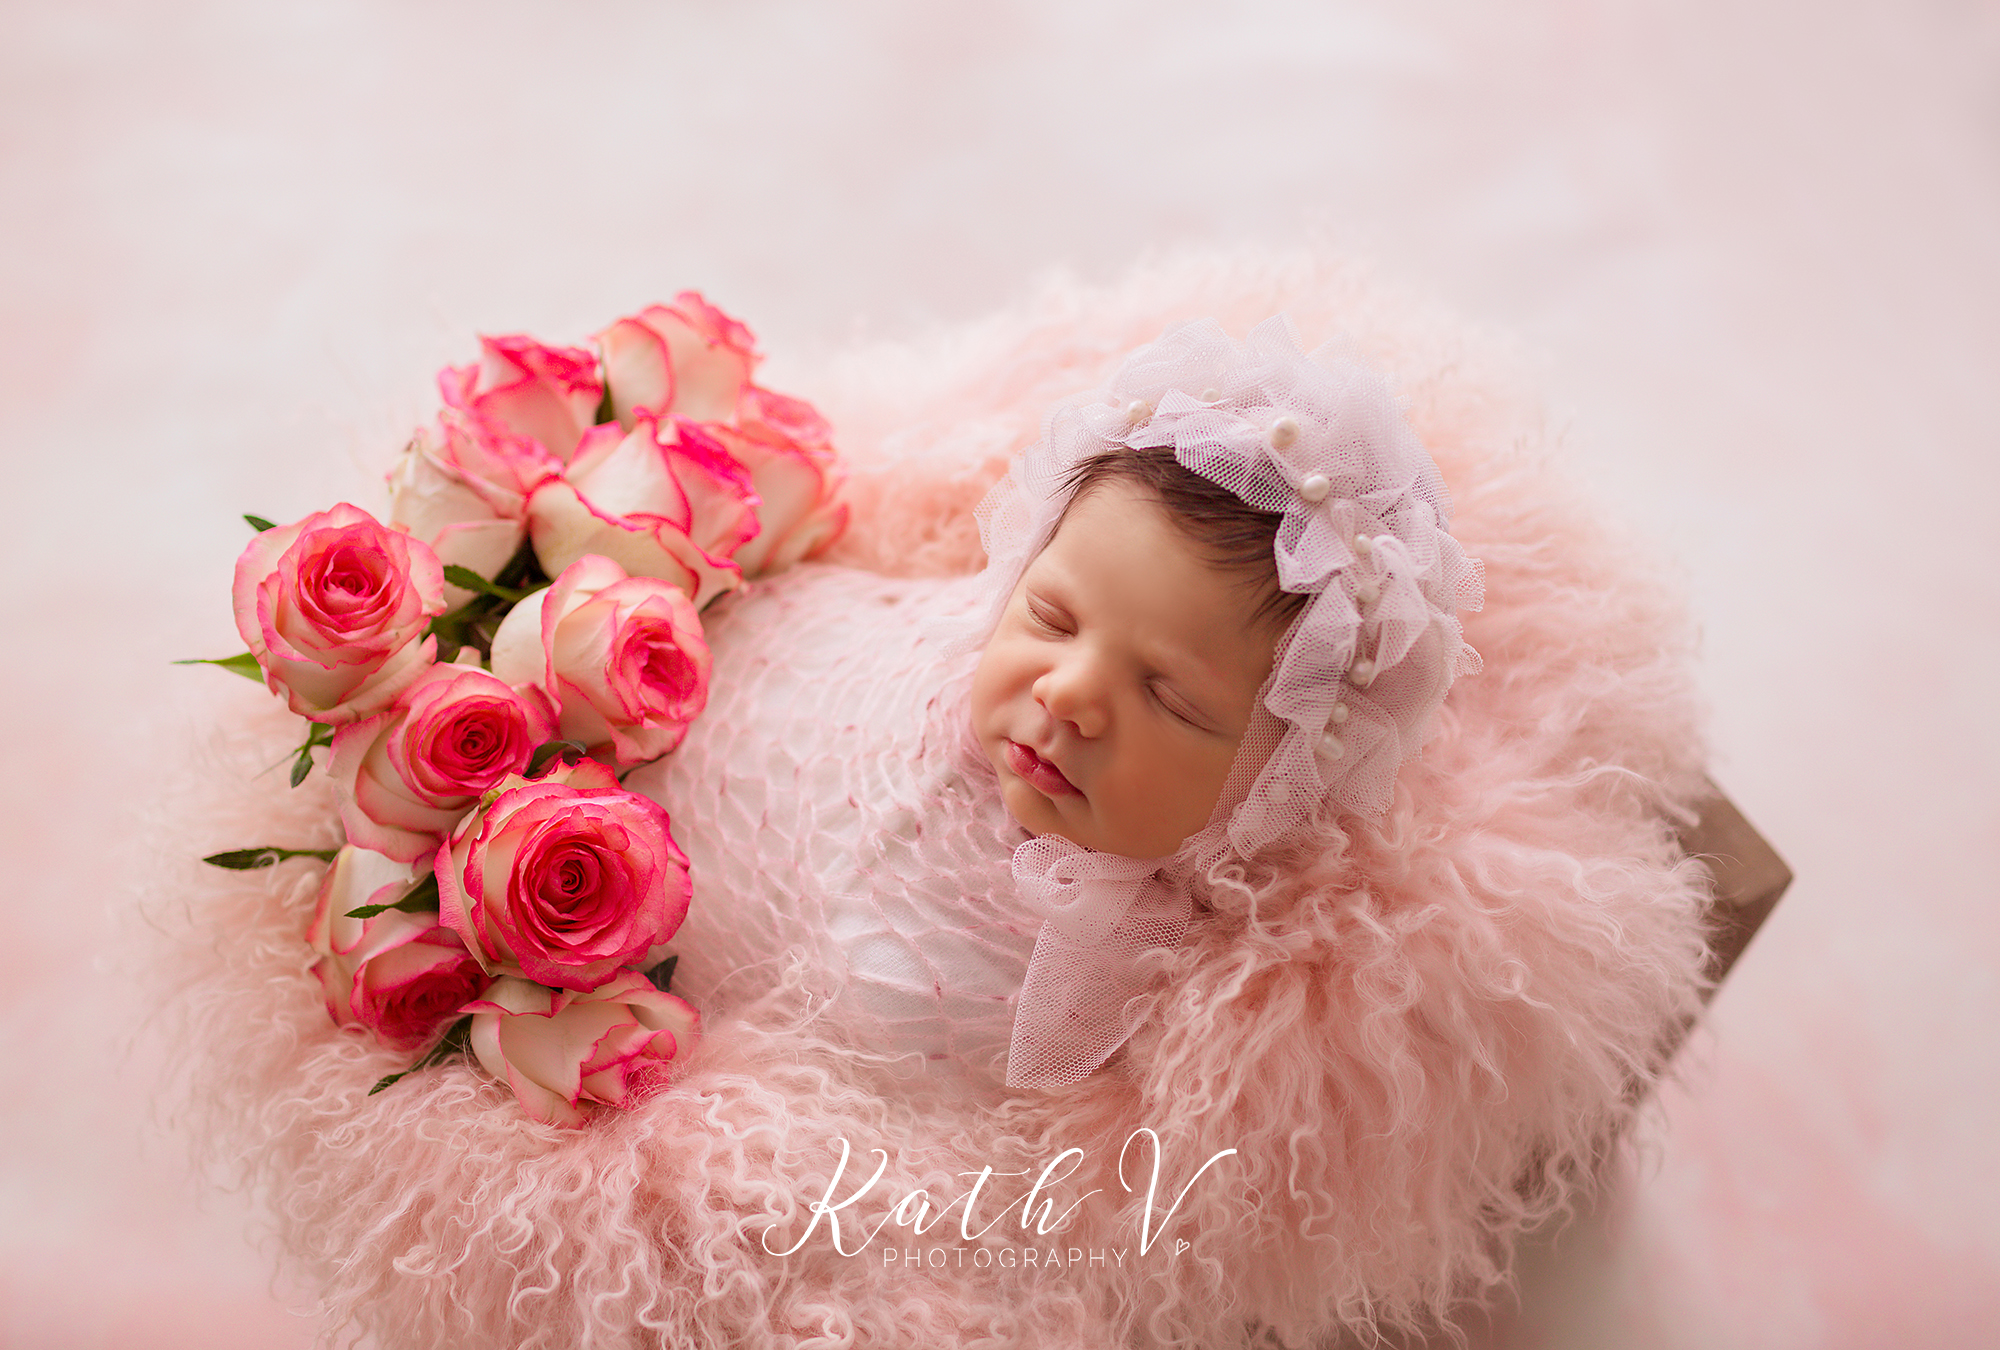 Melbourne-Newborn-Baby-Photography-508.jpg